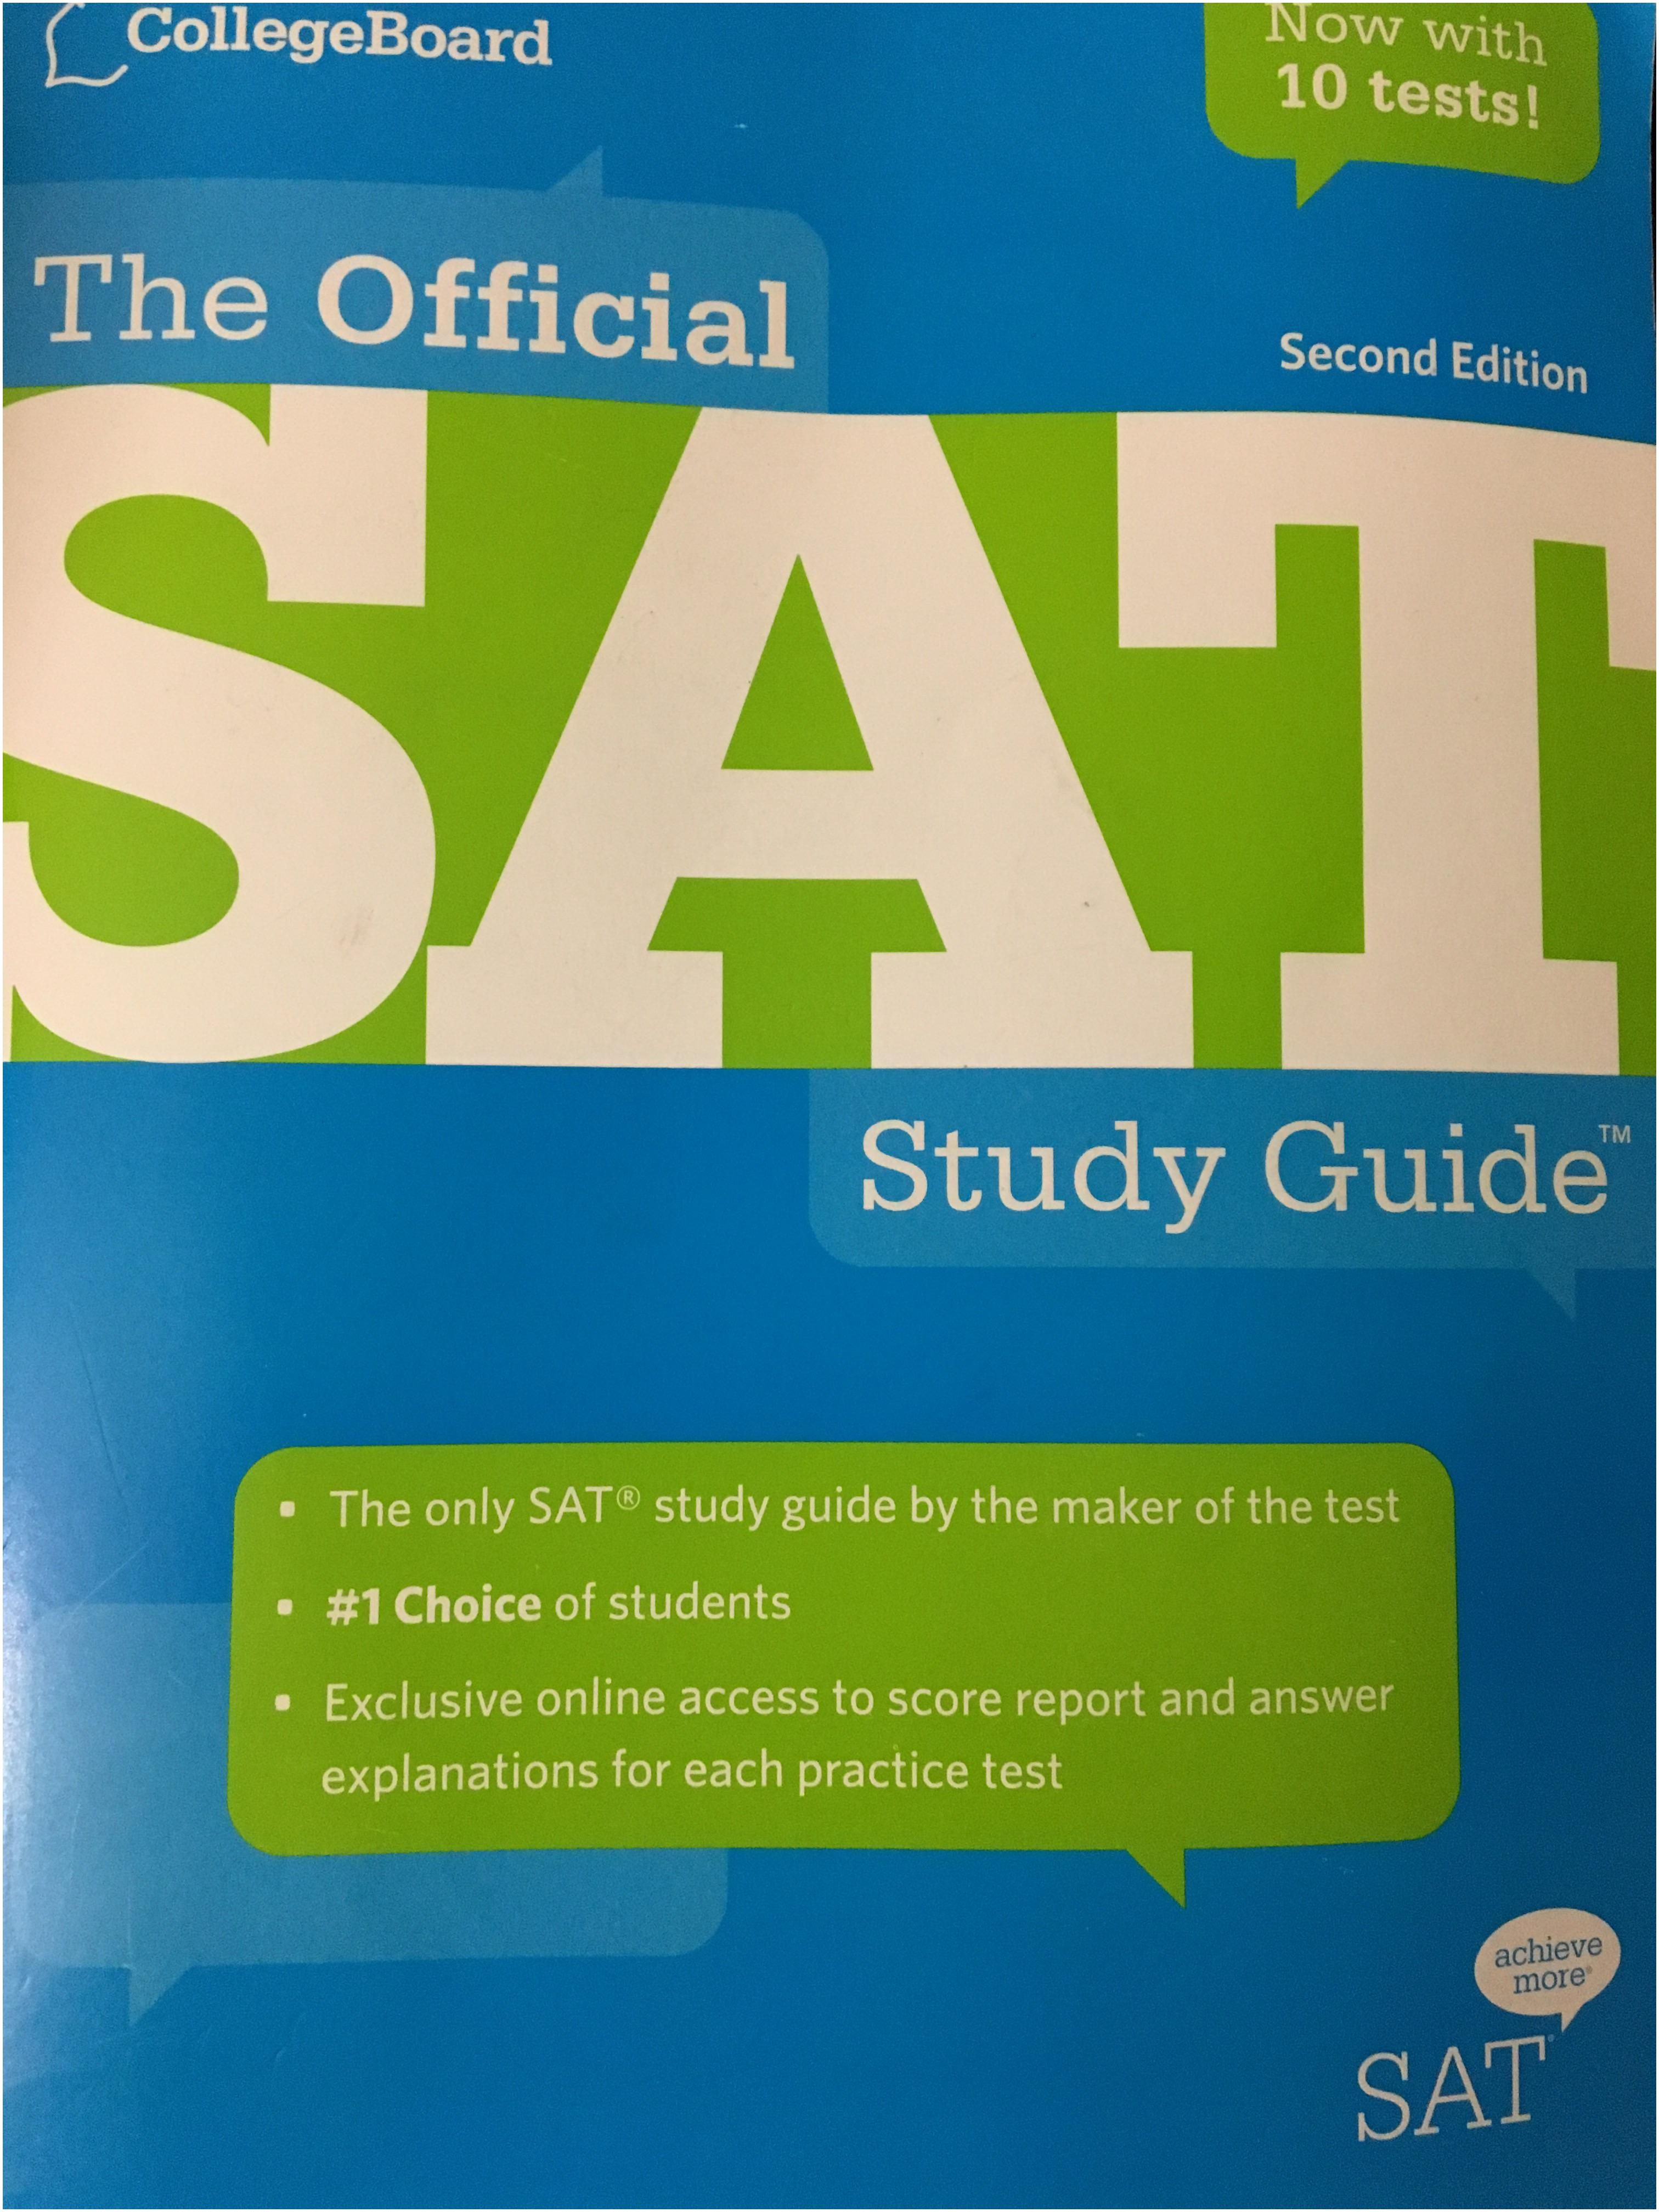 Best Sat Prep Book 2019 is This Book Any Good for Studying for A 2018 2019 Sat Sat